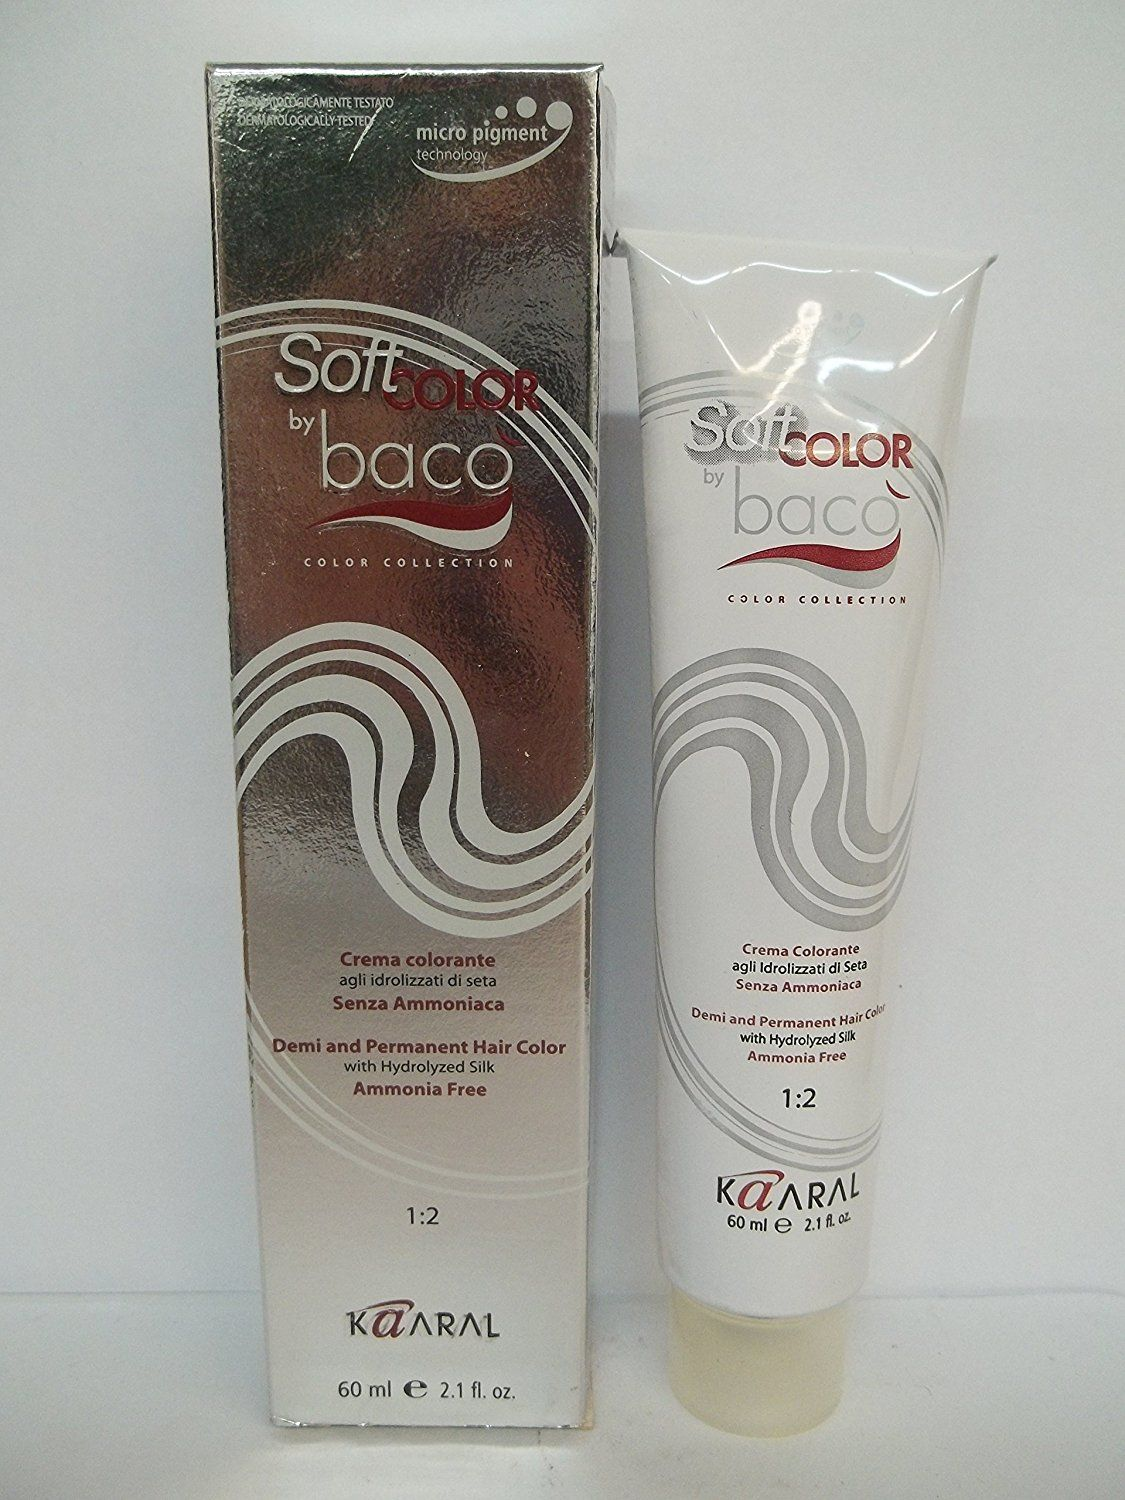 Baco Hair Color Demi And Permanent Ammonia Free By Kaaral Tinta Super Black Pigment 100ml 21 Oz 630 Dark Golden Blonde Click Image For More Details